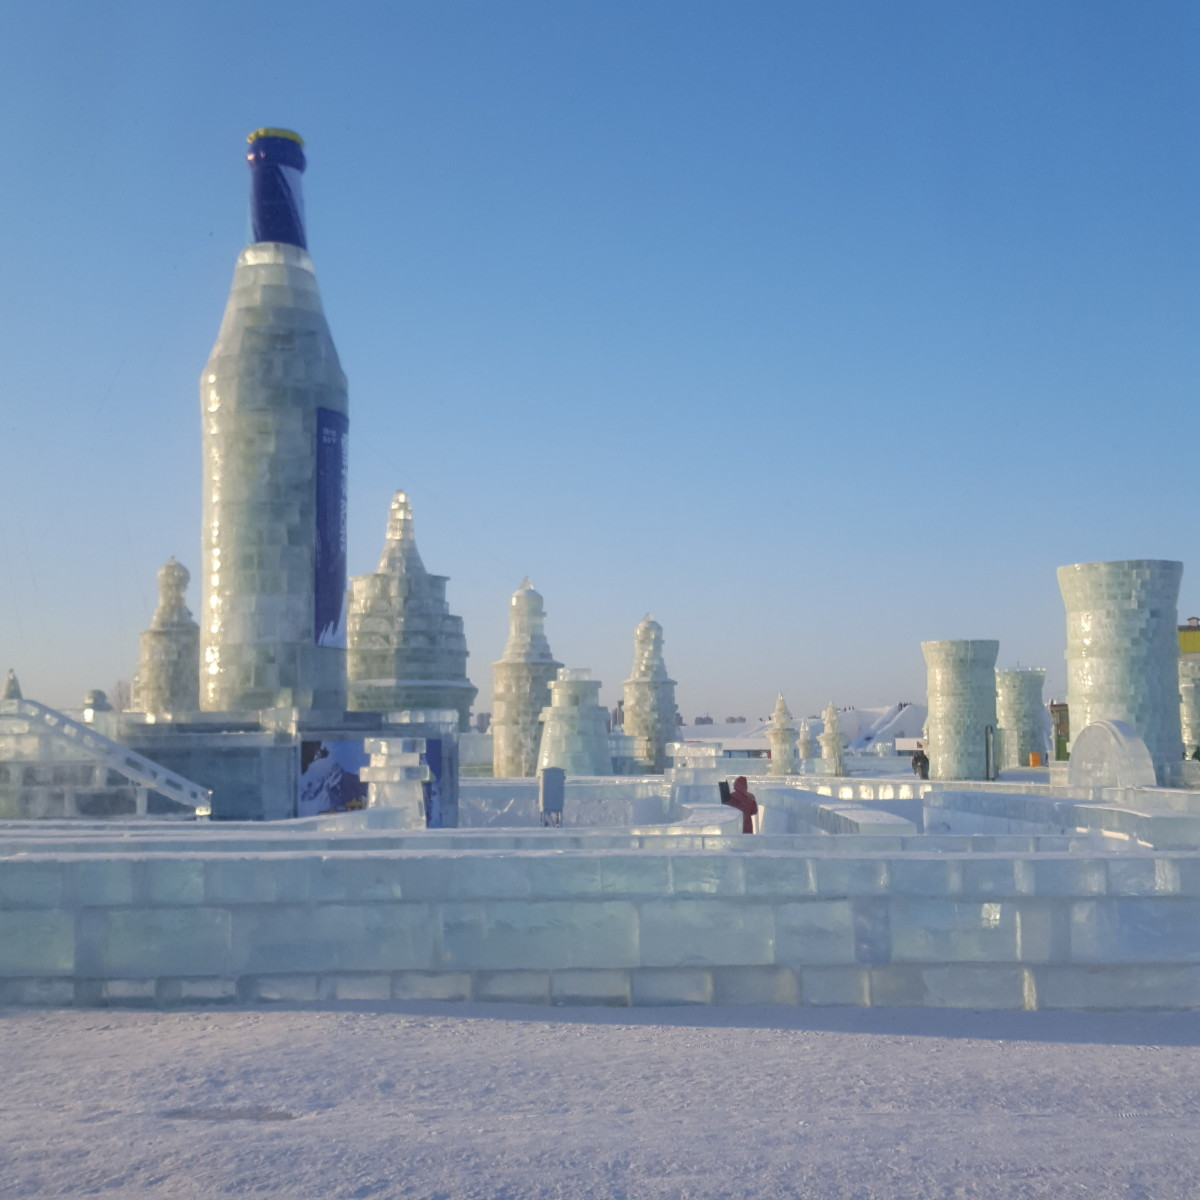 A crystal clear sky over an icy mini maze.